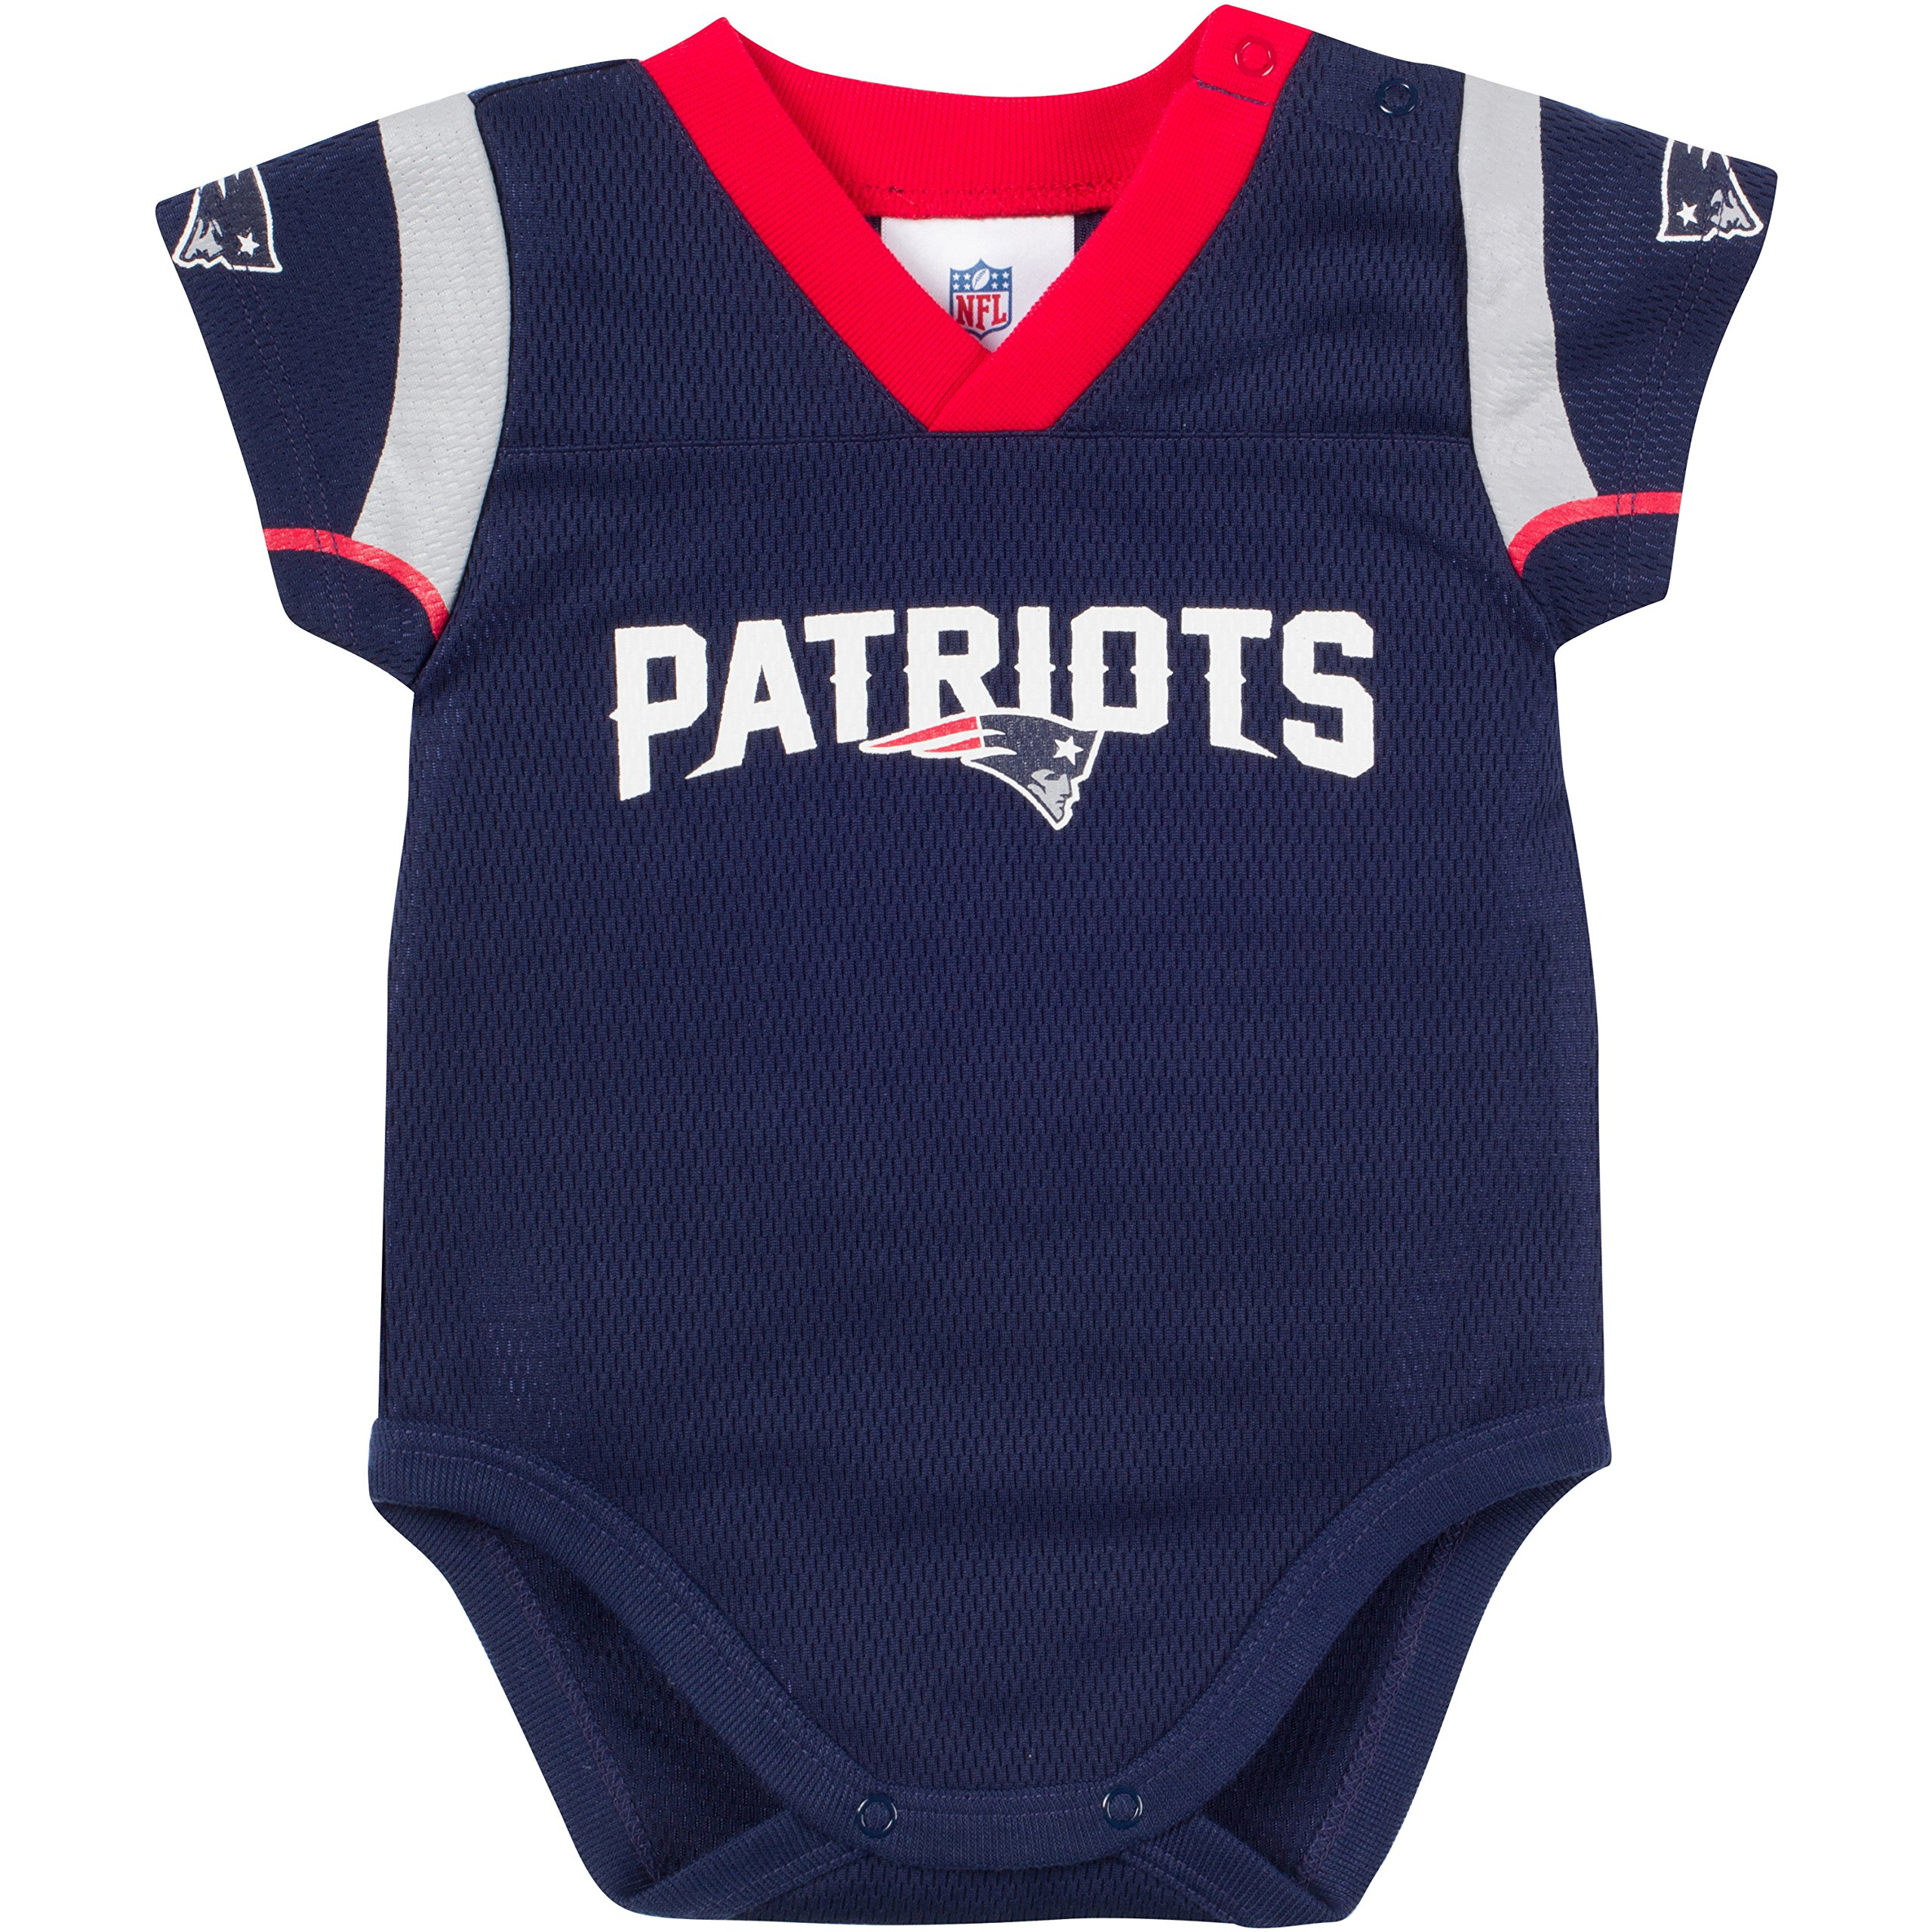 7505d77babb Amazon.com  NFL - New England Patriots   Fan Shop  Sports   Outdoors